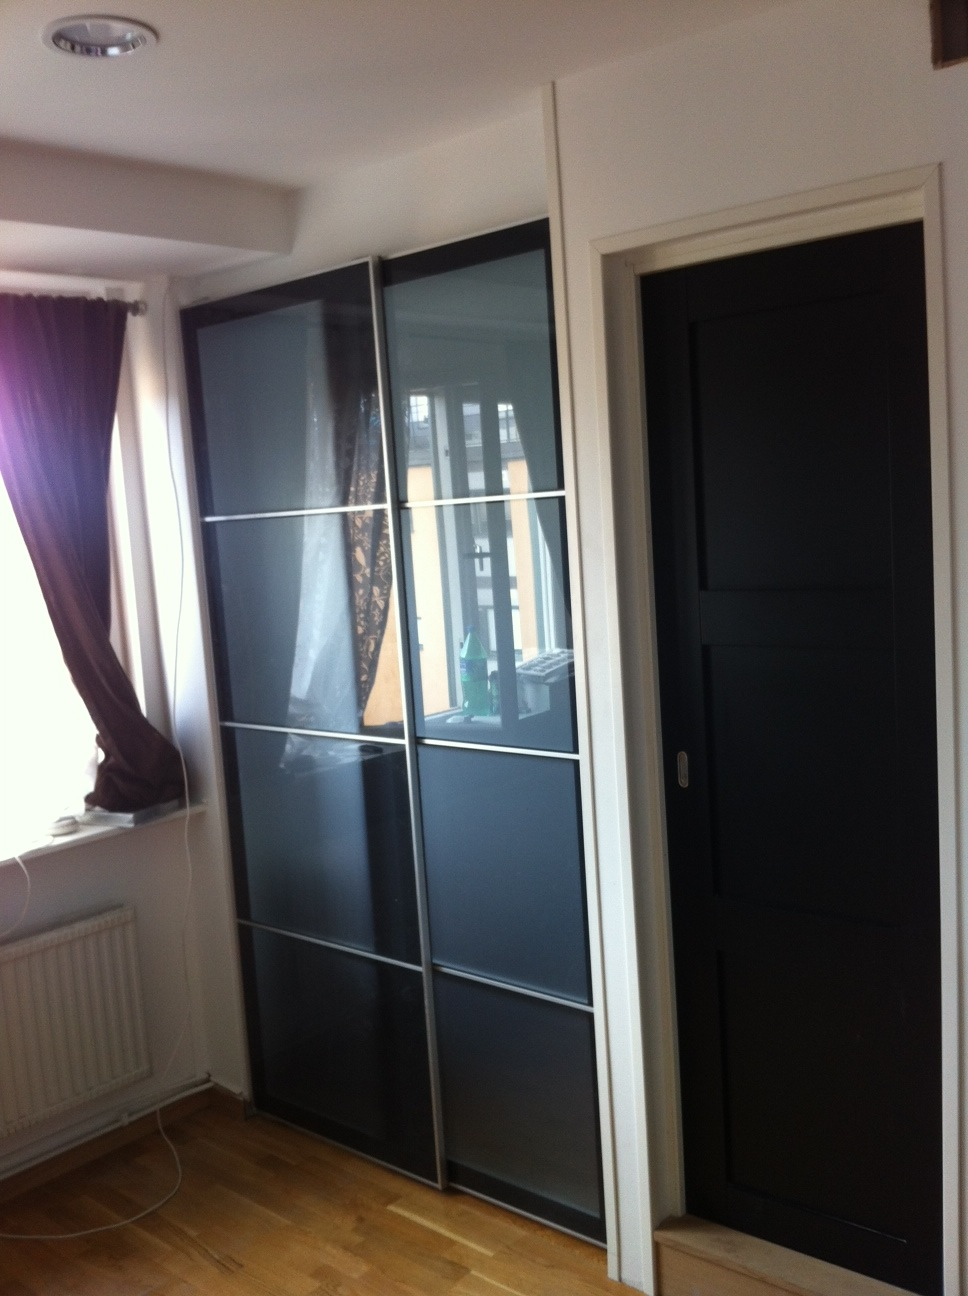 Ikea Pax Hack Ikea Sliding Door For Sleeping Alcove Tight Spaces - Ikea